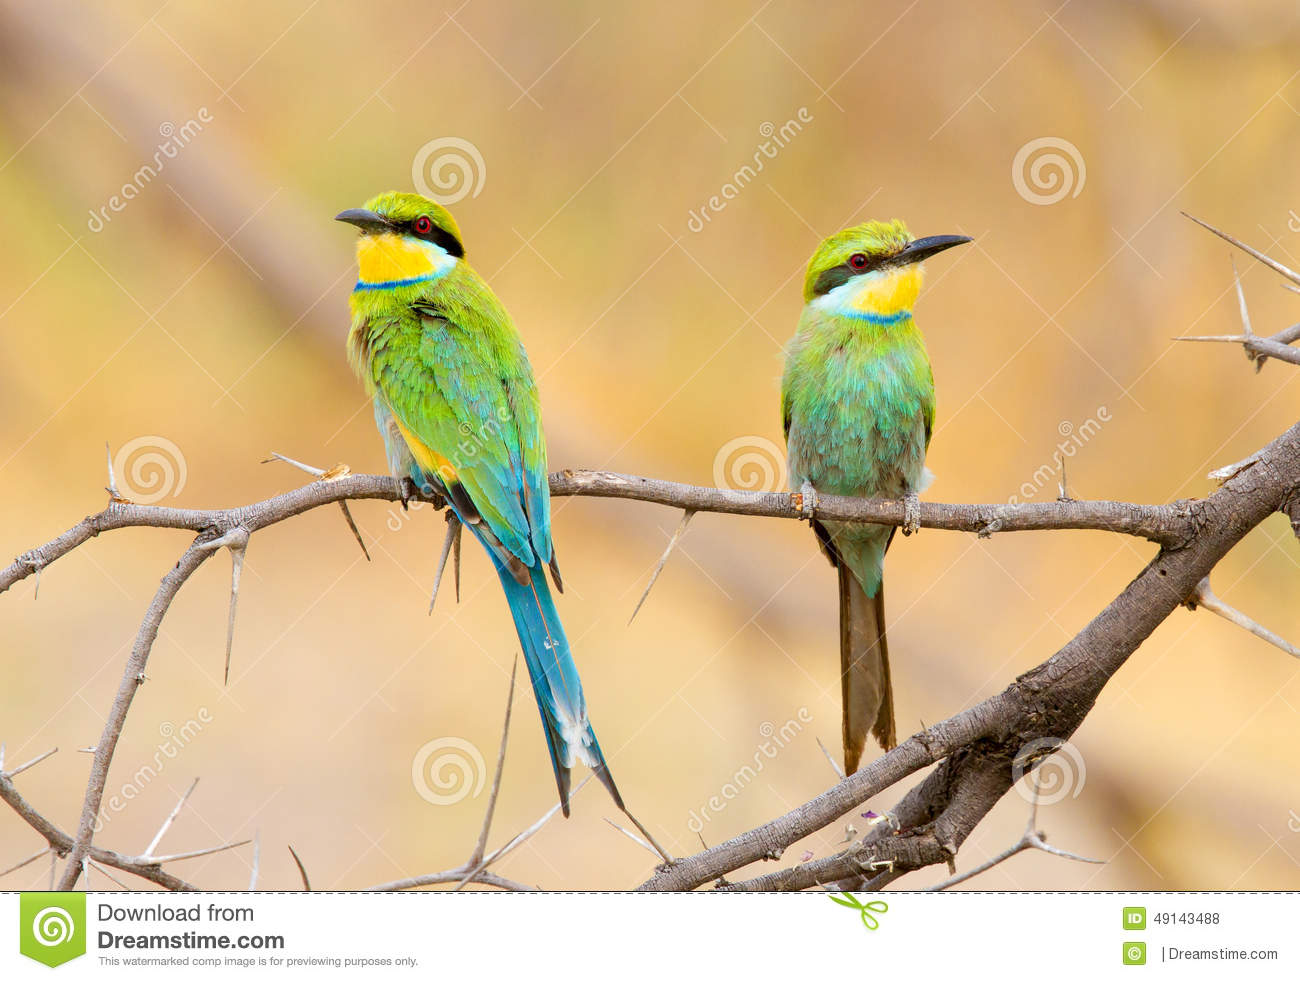 A perched pair of Swallow-tailed bee-eaters